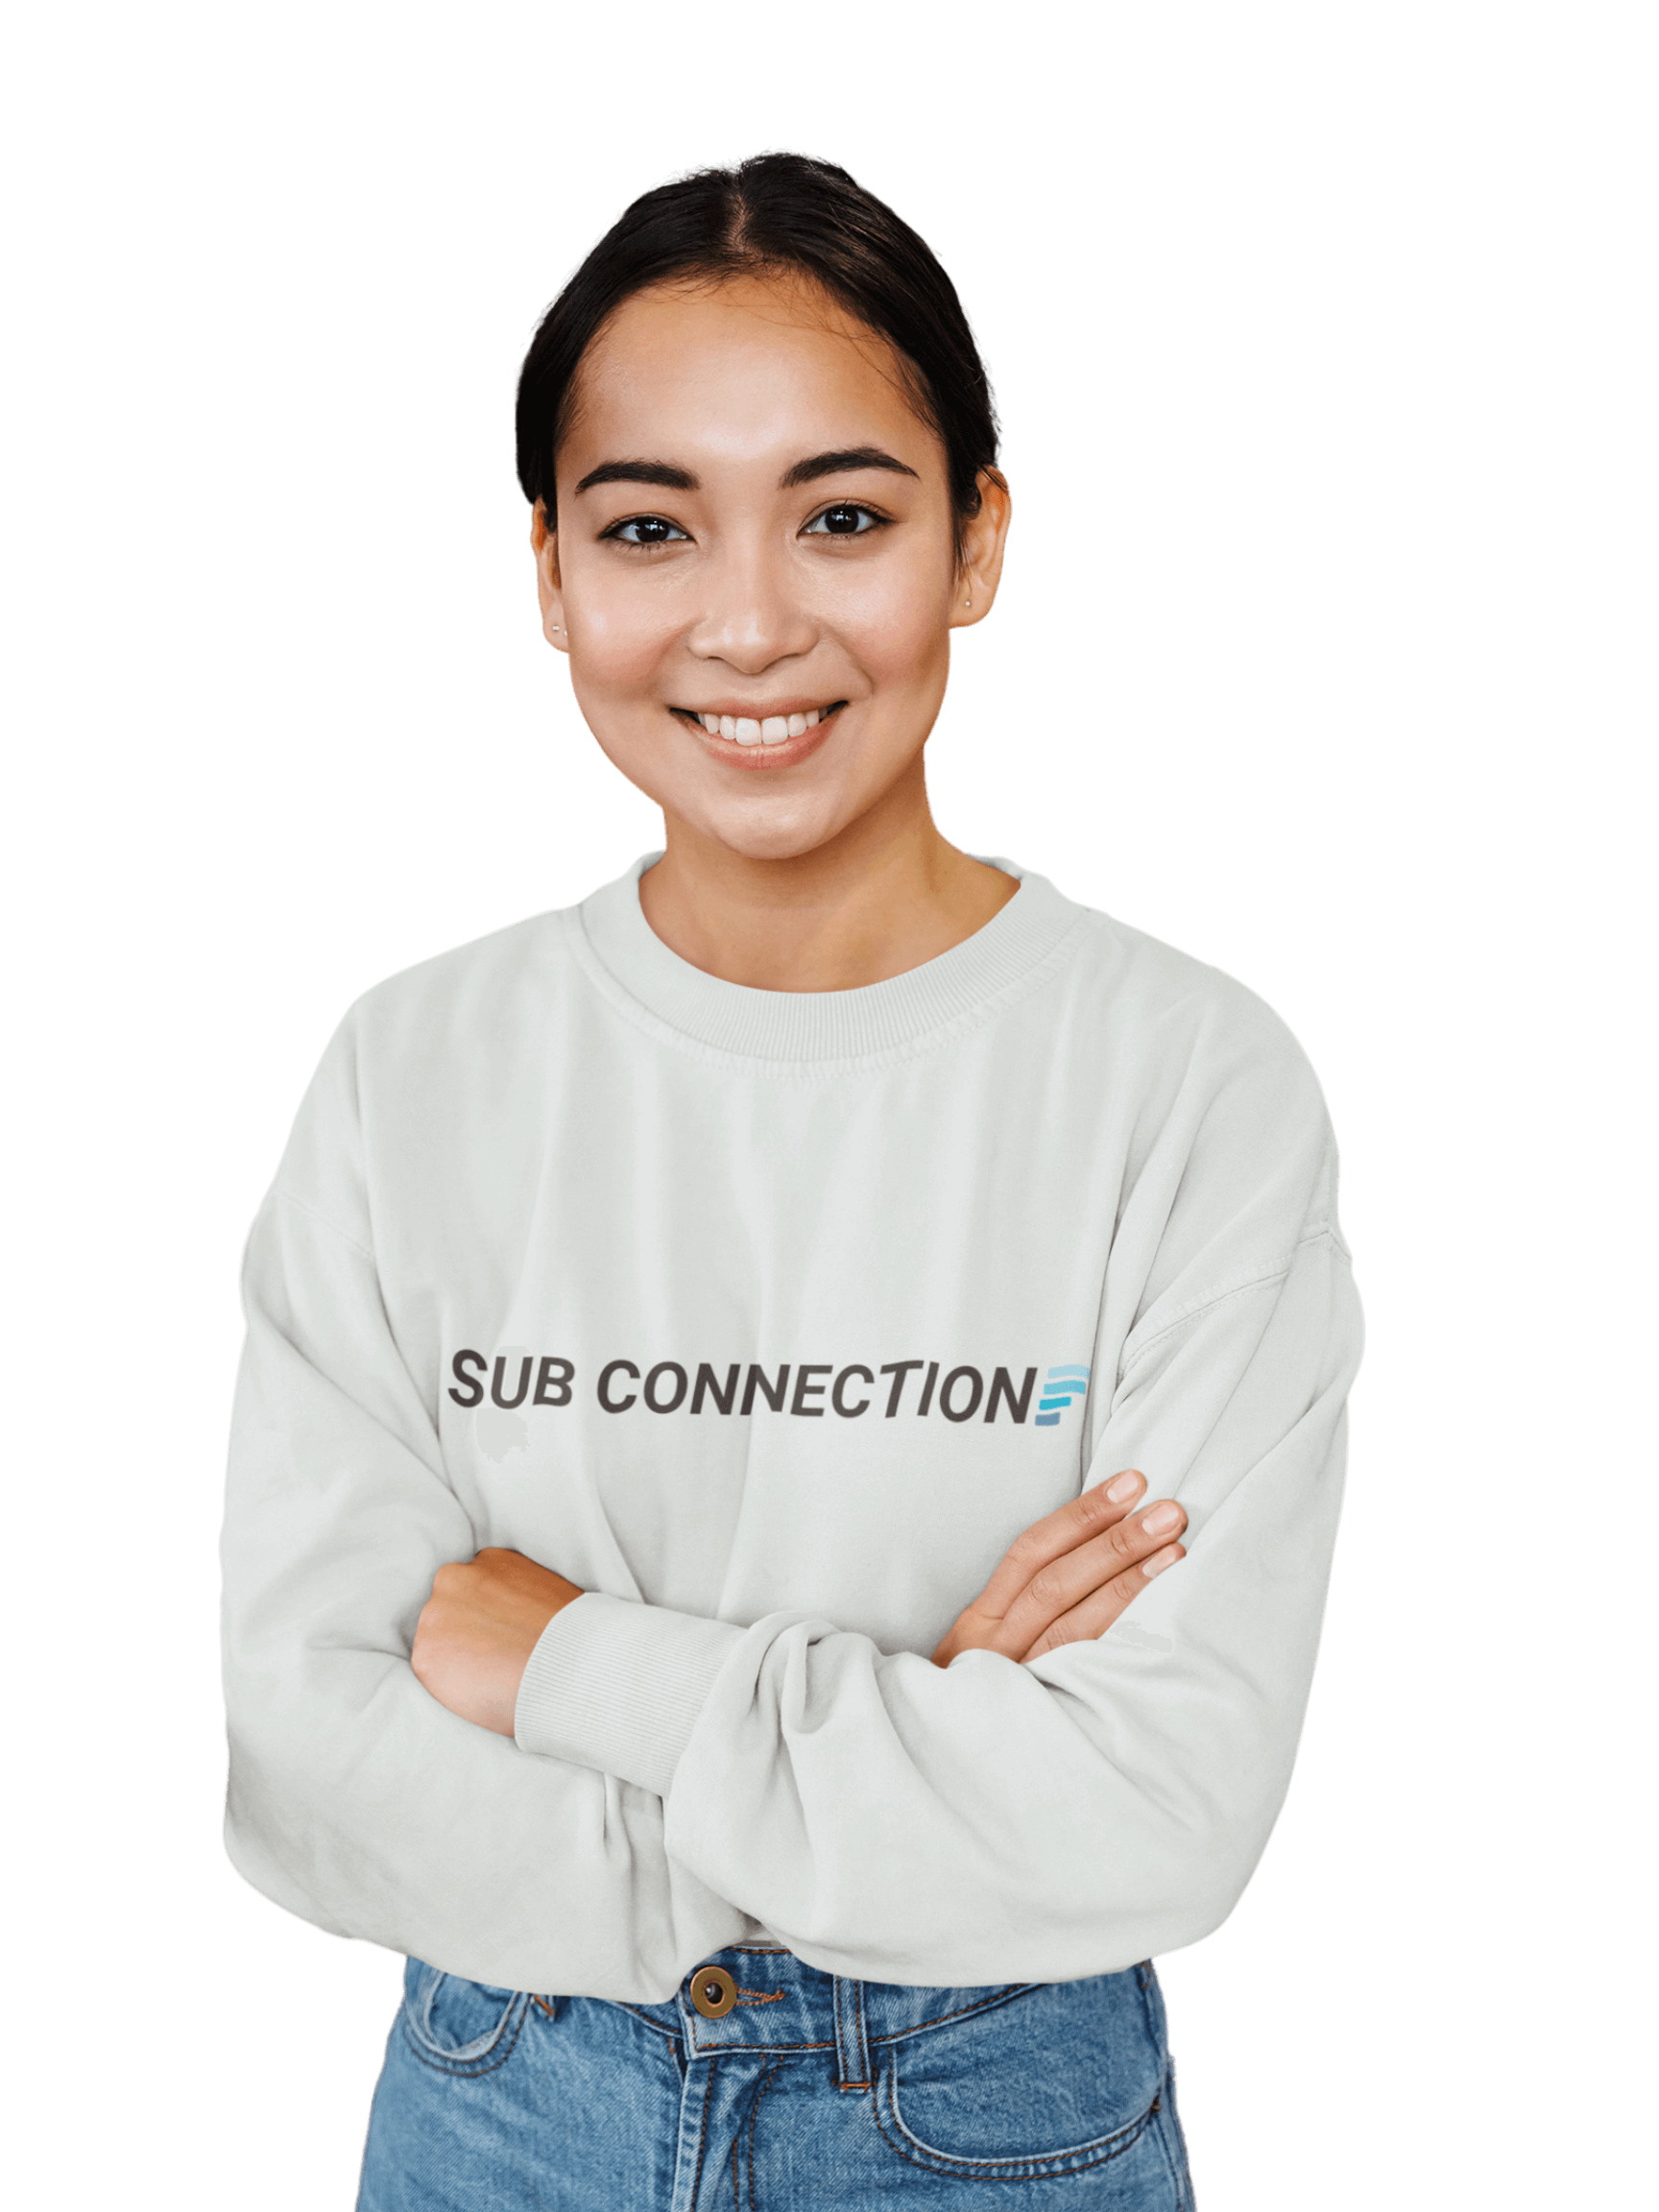 Sub Connection - Idaho Substitute Teacher Placement